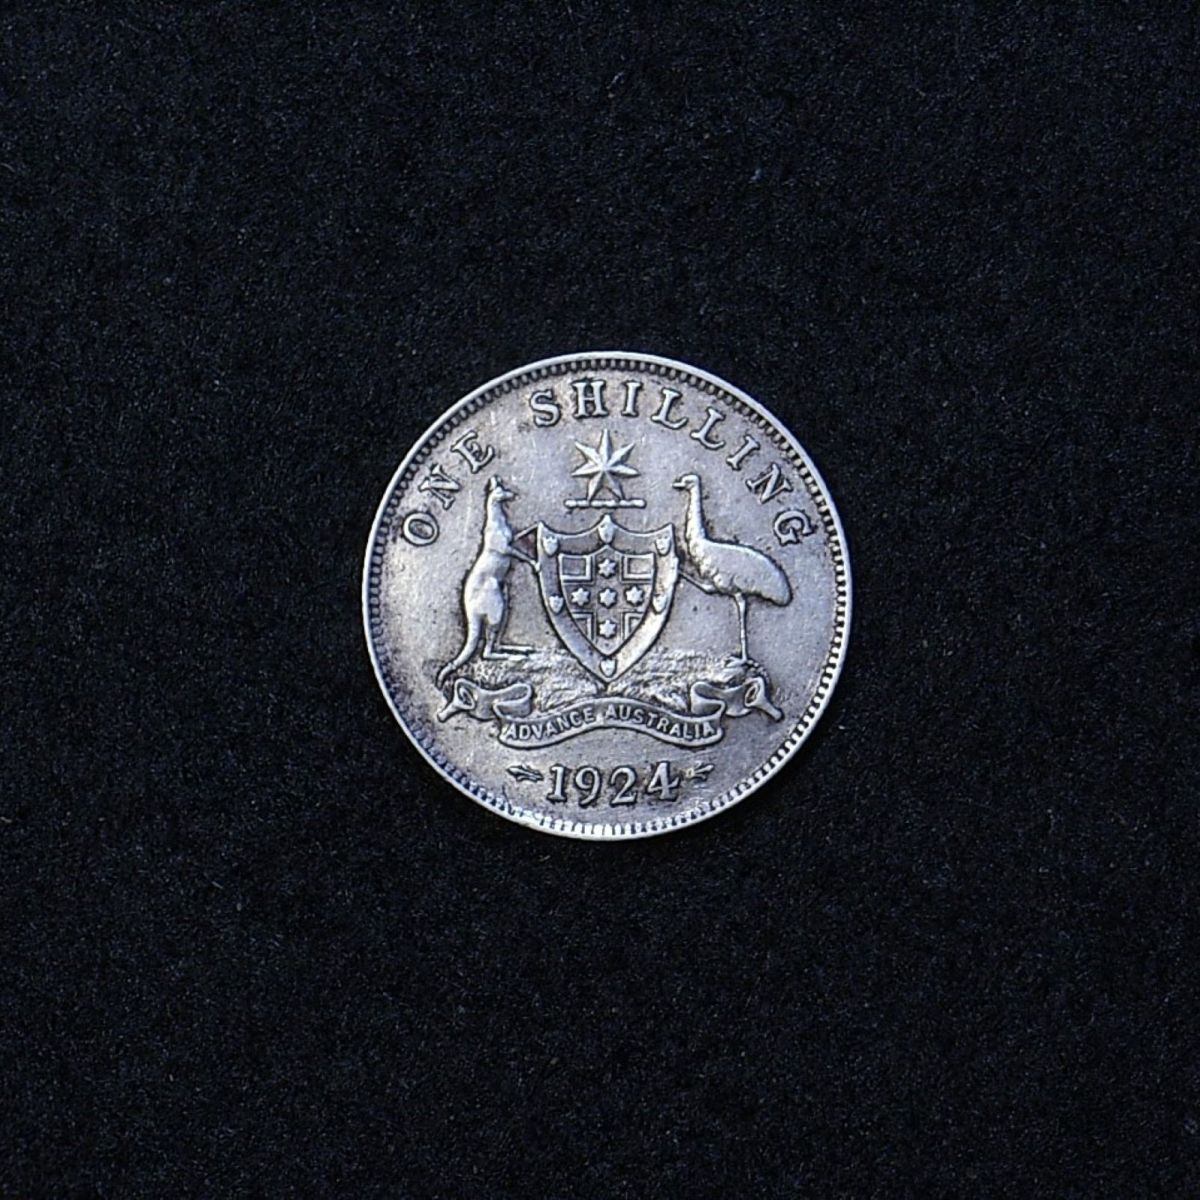 Aus Shilling 1924 reverse showing overall appearance